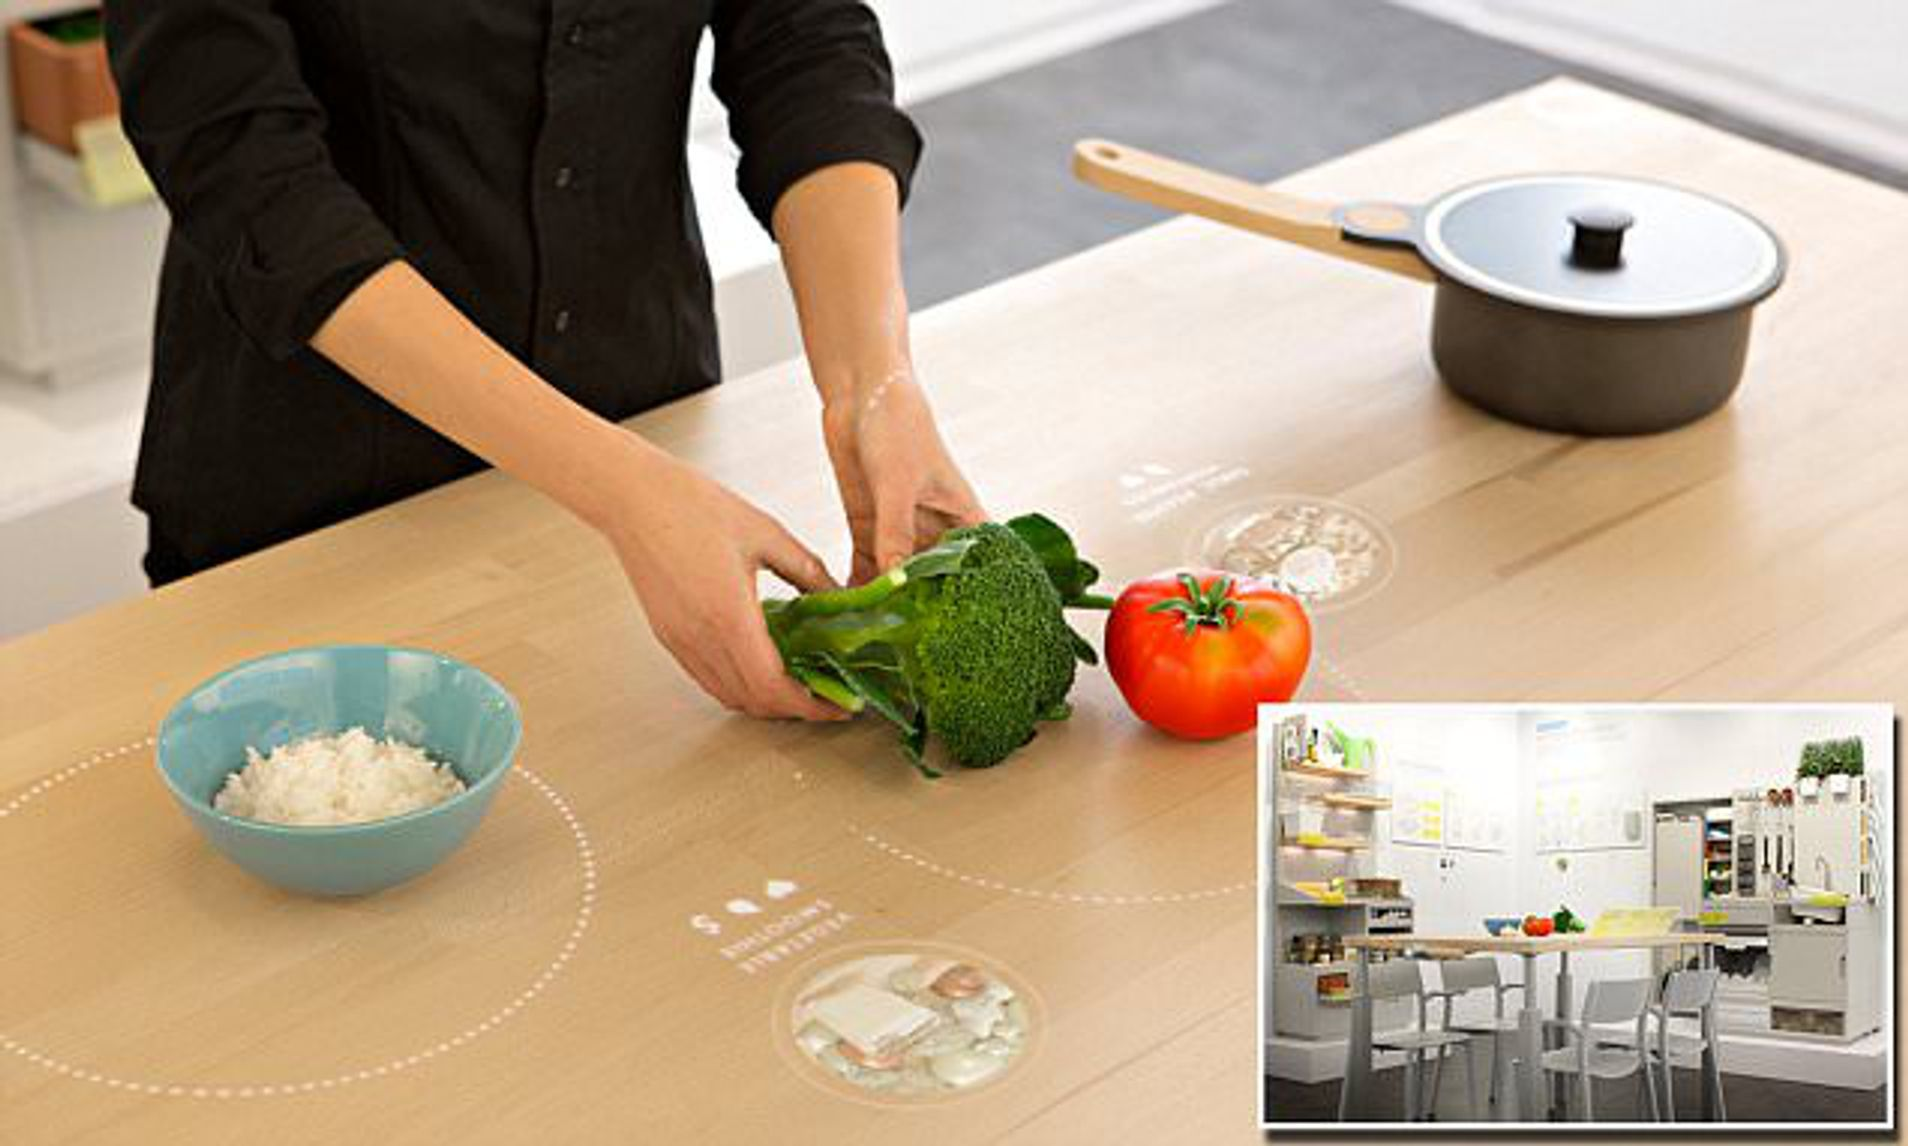 Ikea Reveals Its Vision For The Kitchen In 2025 Daily Mail